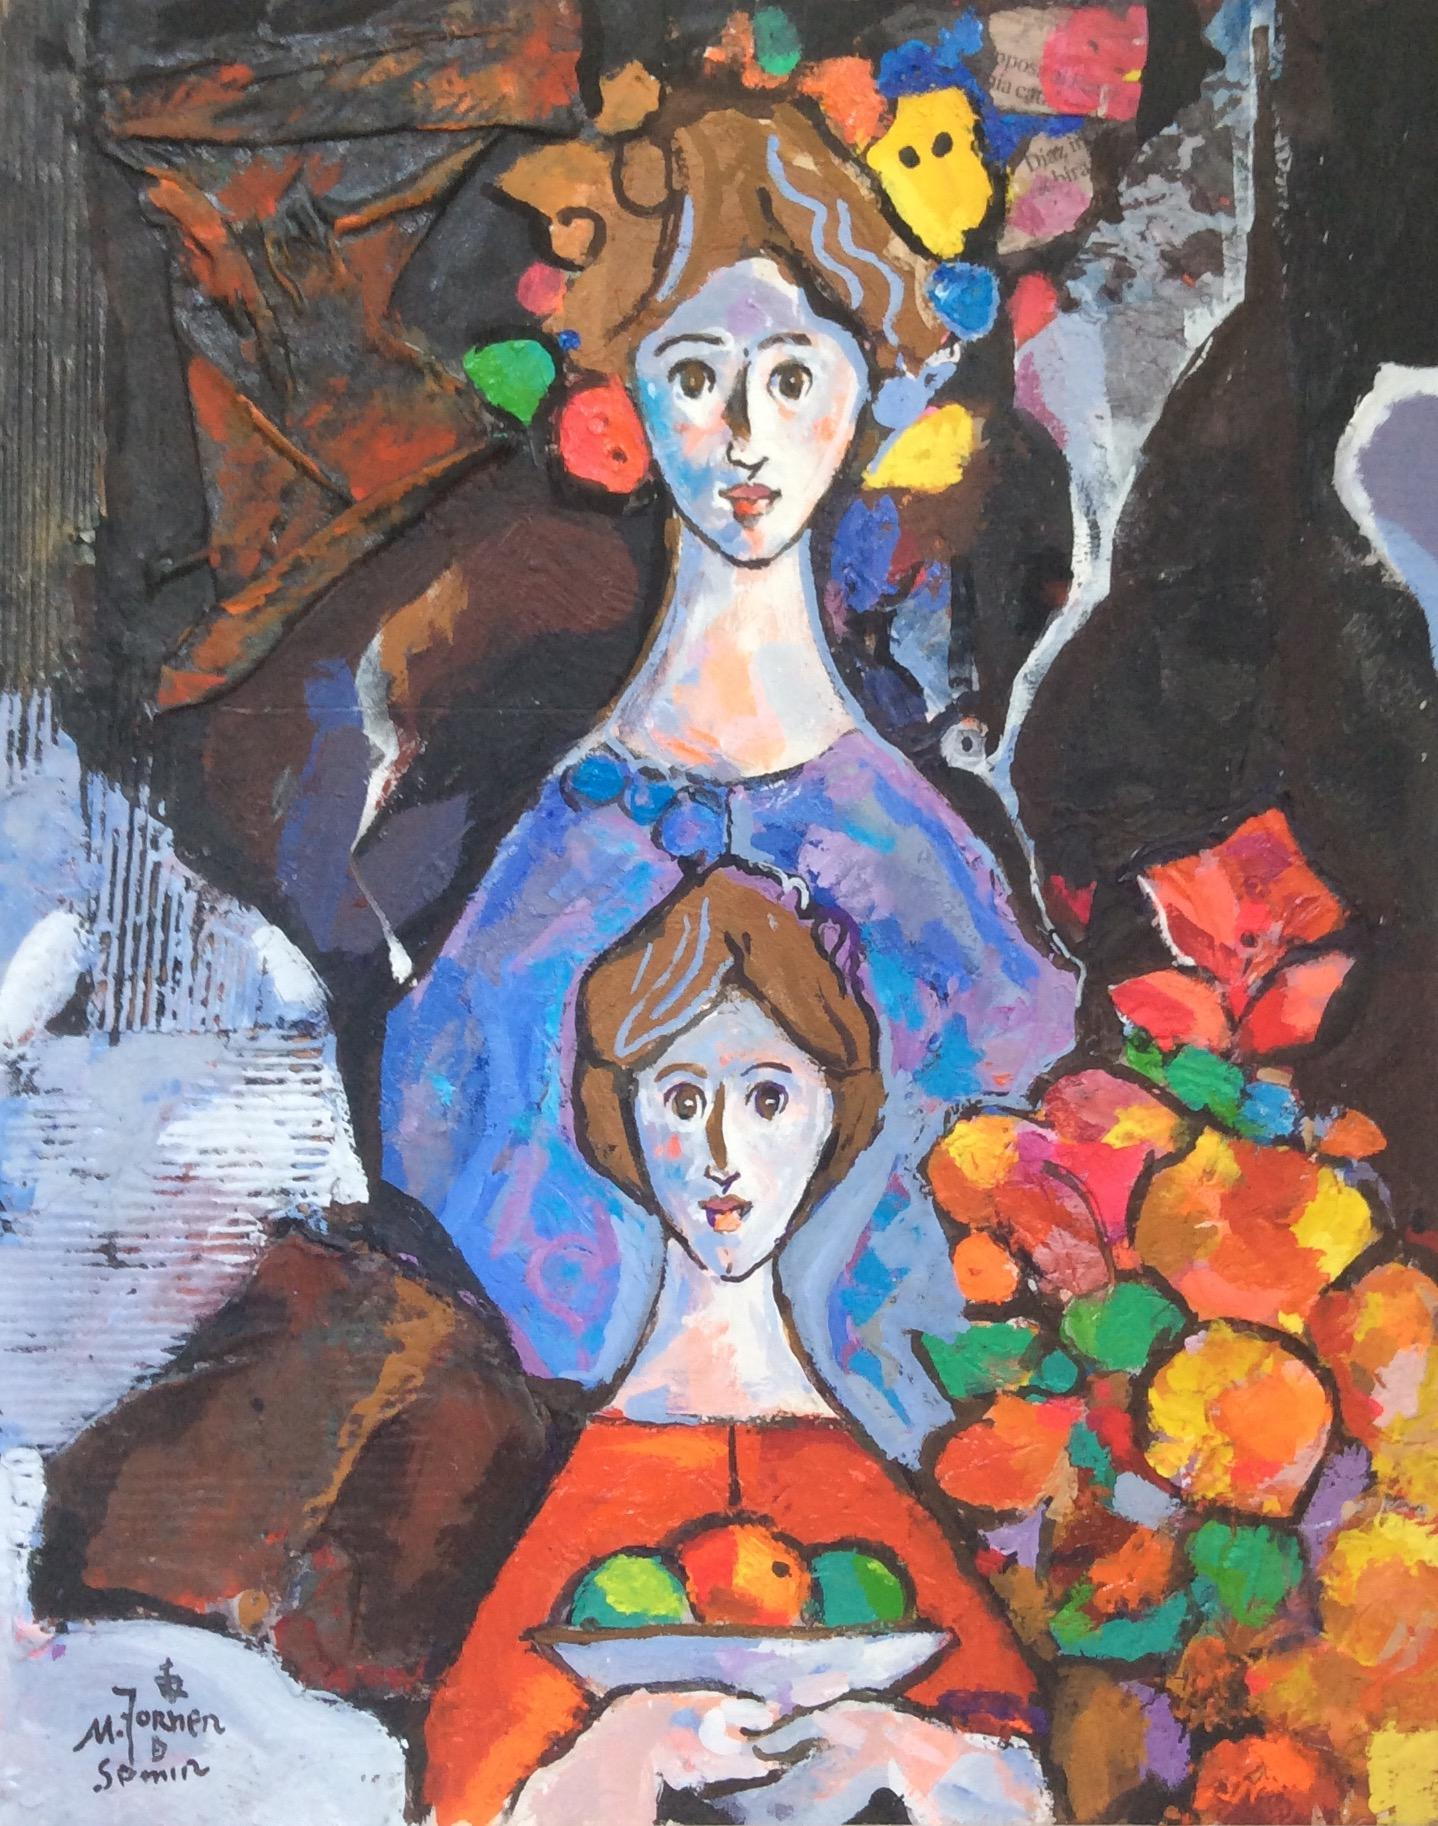 Dos Mujers,  Original Oil & Mixed Media on Canvas by Torner de Semir